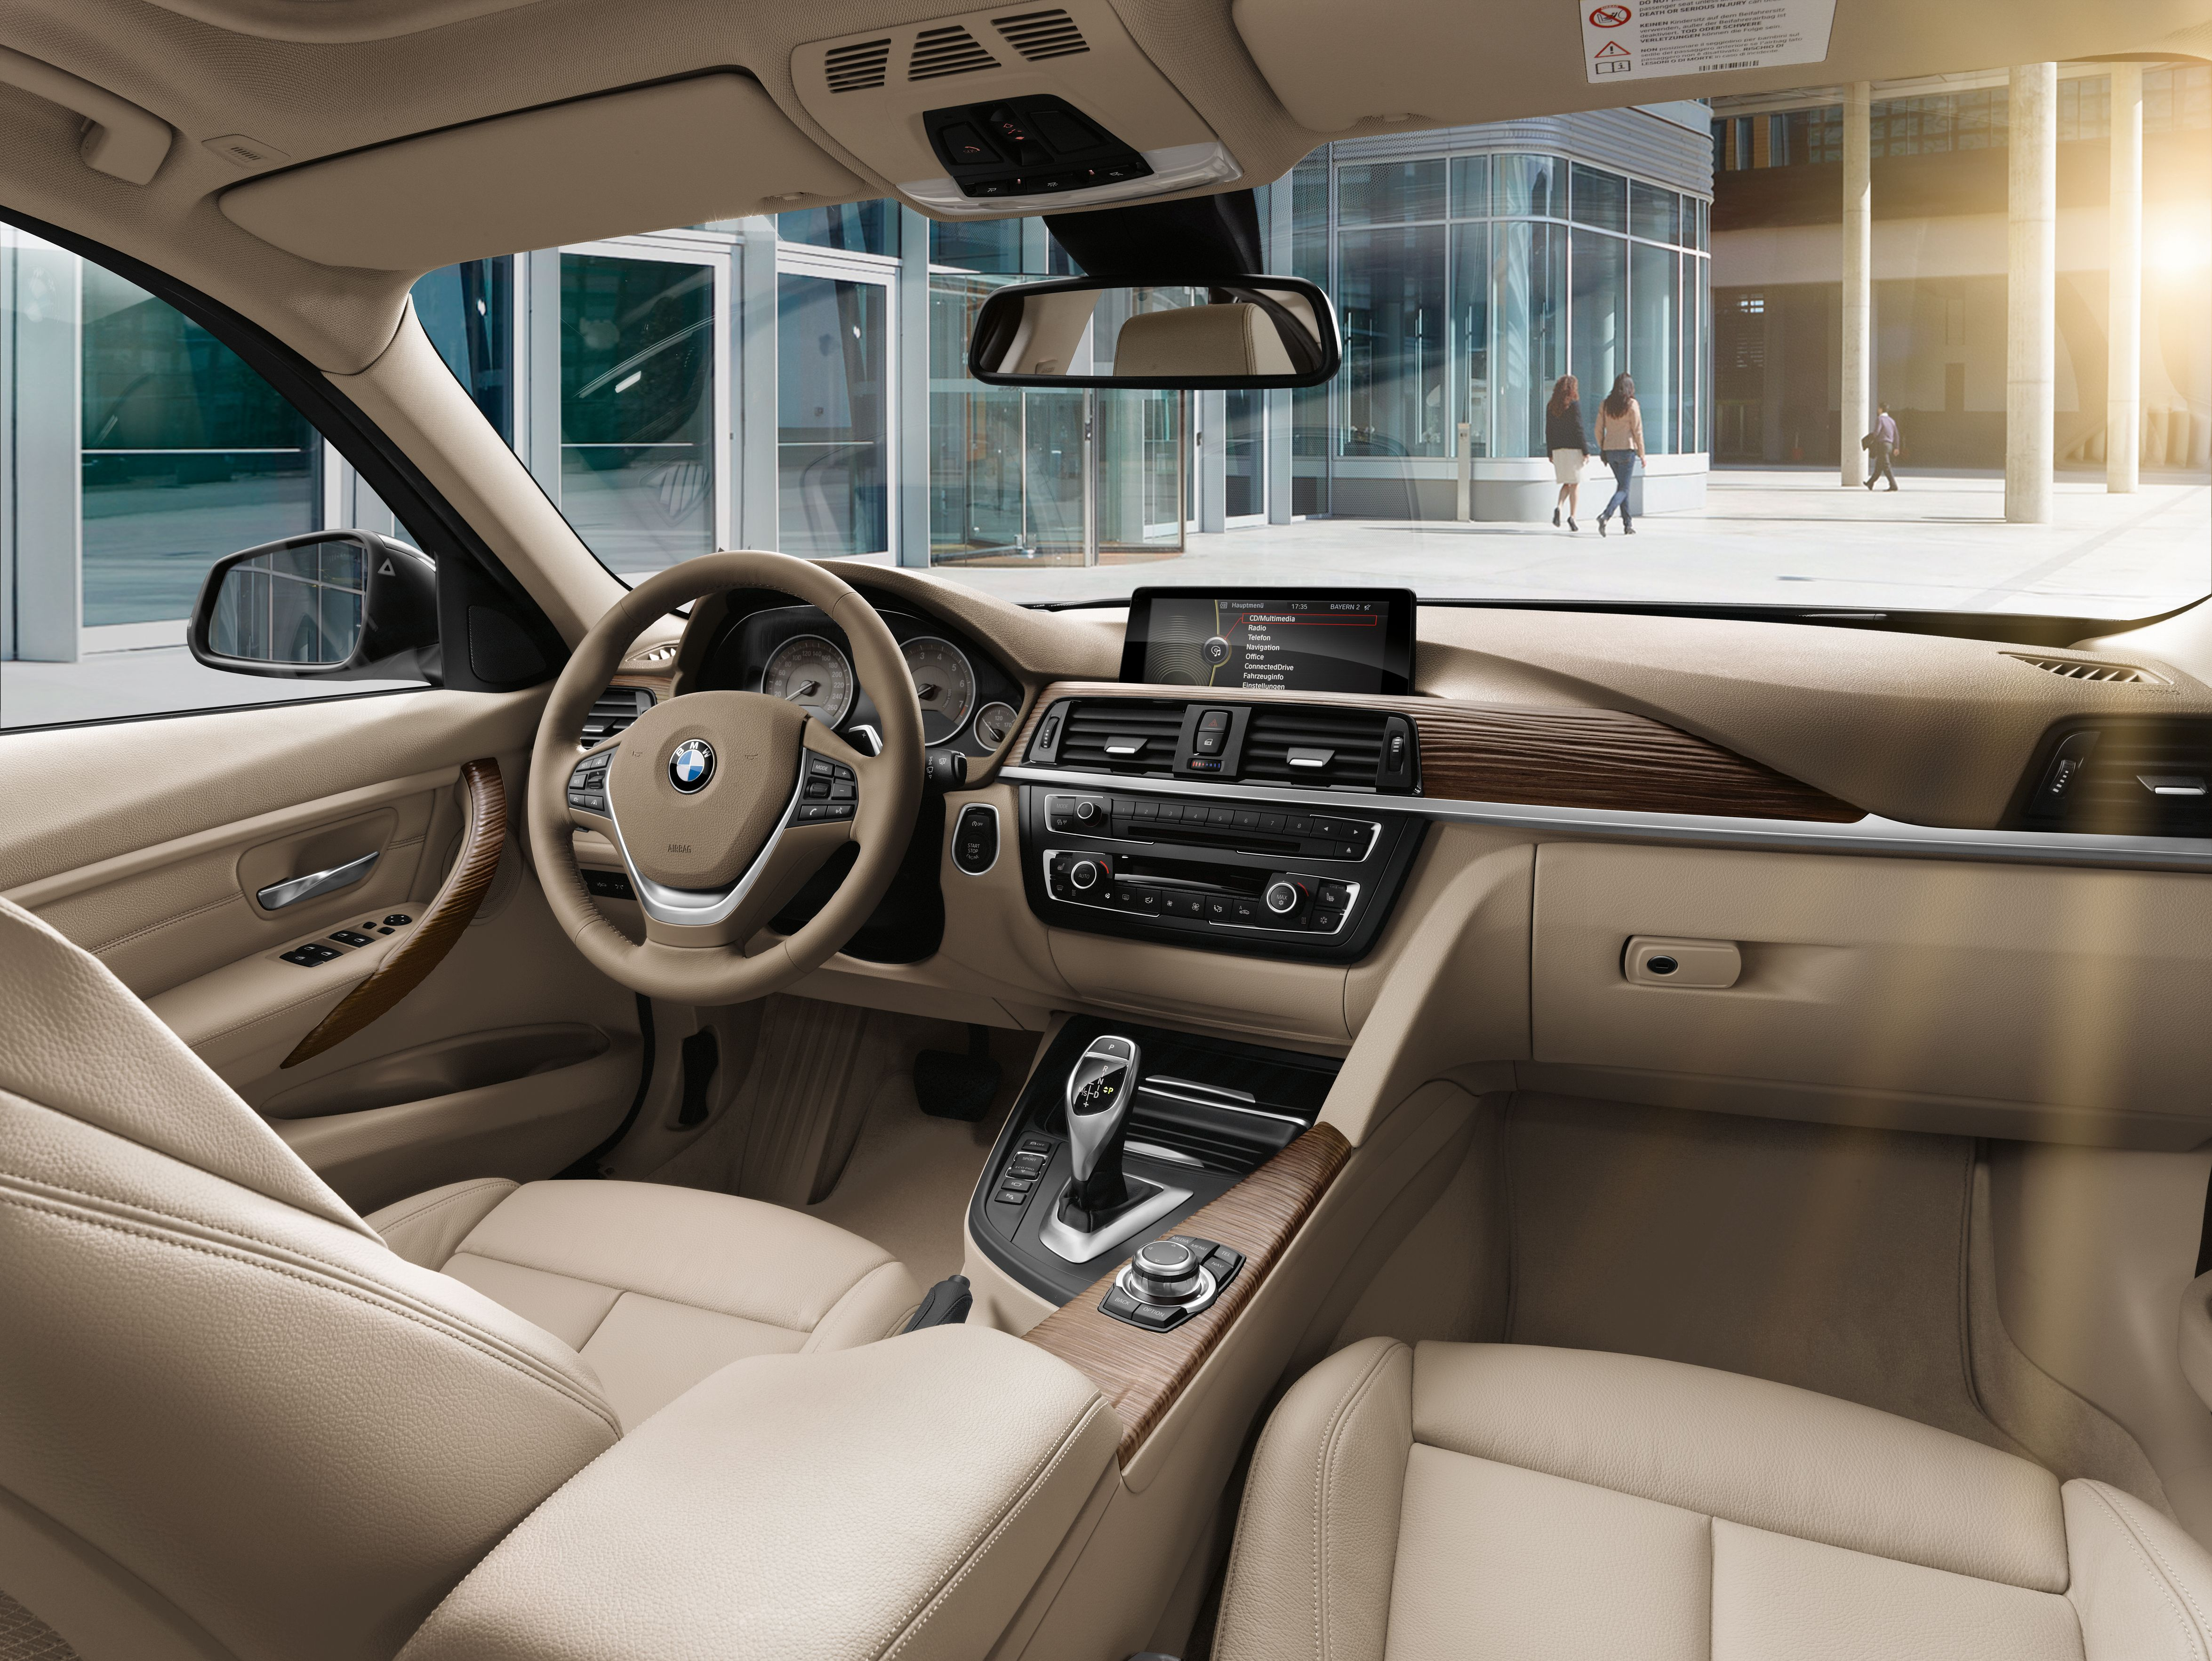 hight resolution of inside the bmw 3 series sedan the noticeable increase in space benefits the rear passengers above all bmw cars passenger noticeable space